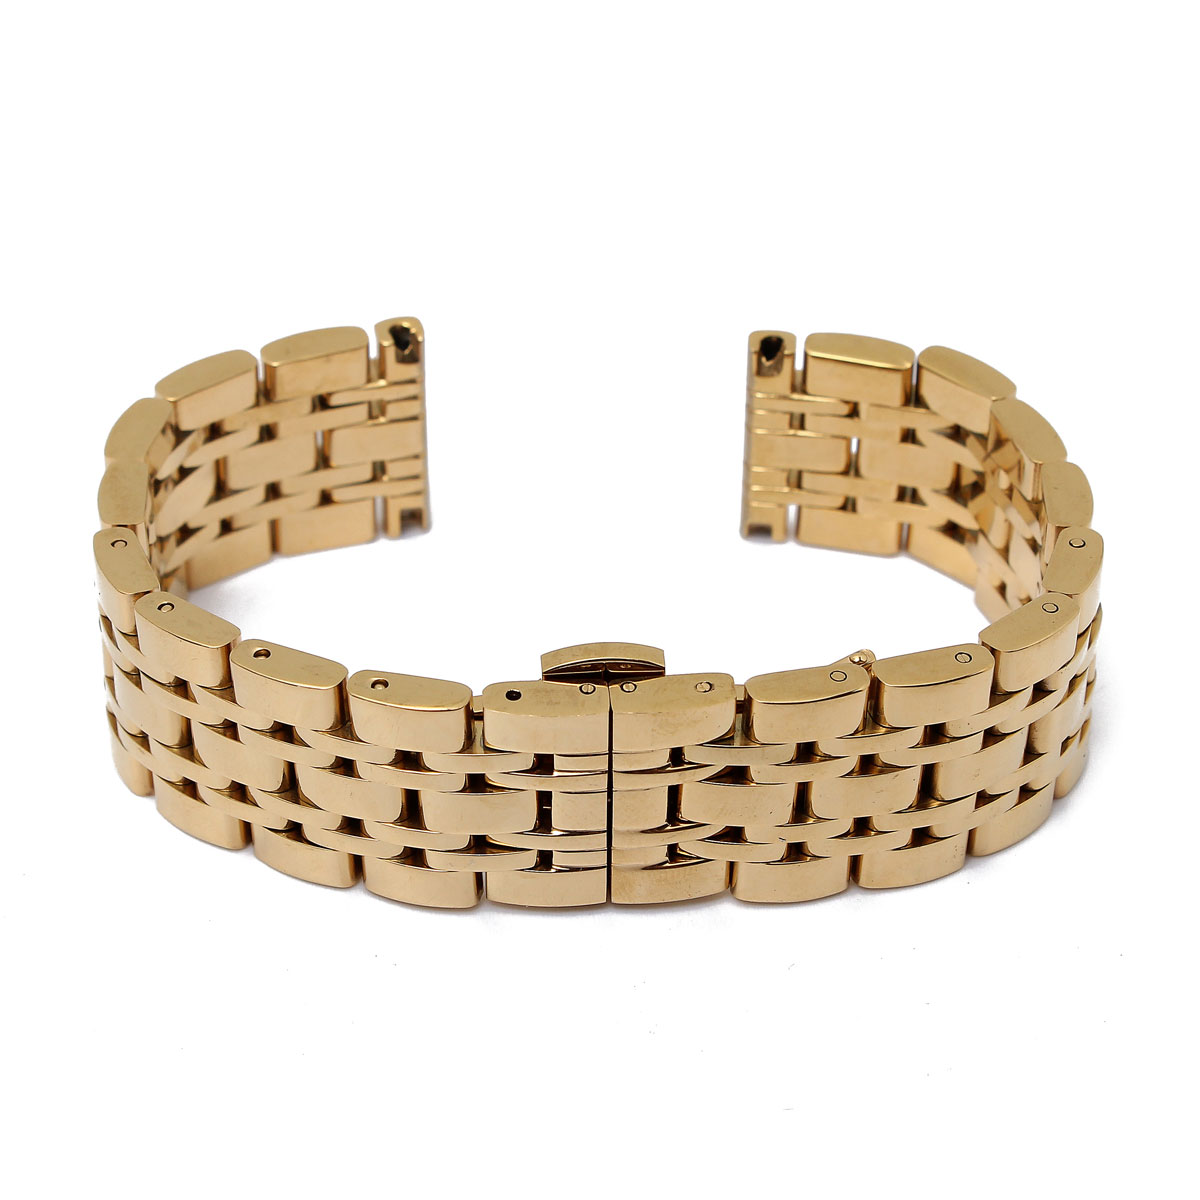 16mm Stainless Steel Watchband for Pebble Steel Watch Strap Butterfly Buckle Bracelet Strap Removable Gold Silver Gold+Silver<br><br>Aliexpress